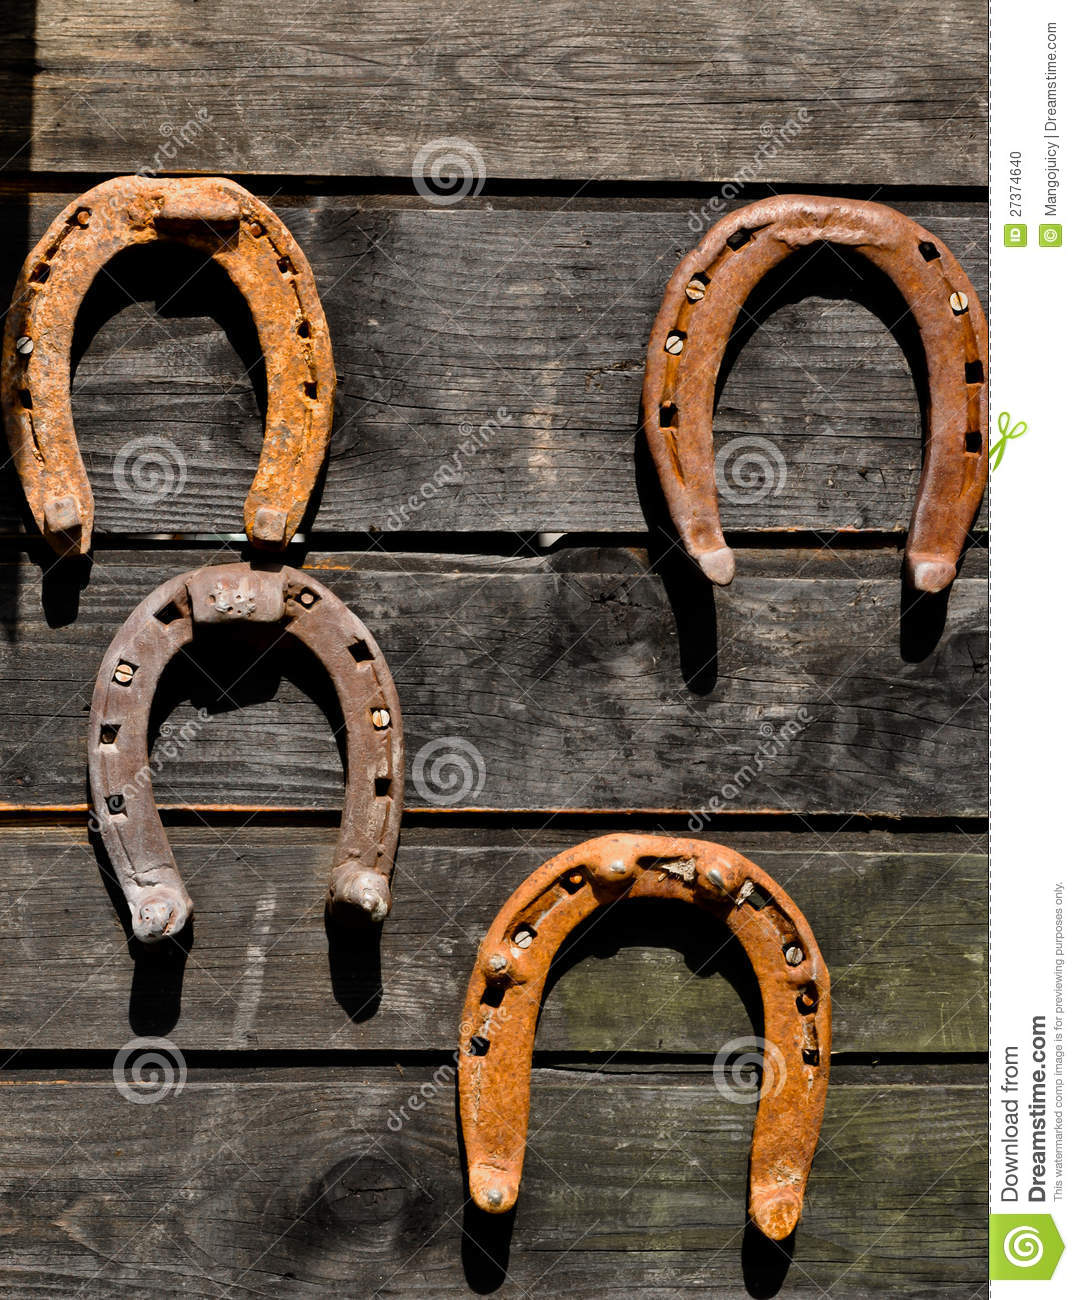 How To Bring Good Luck horseshoes - symbols of good luck stock photo - image: 27374640